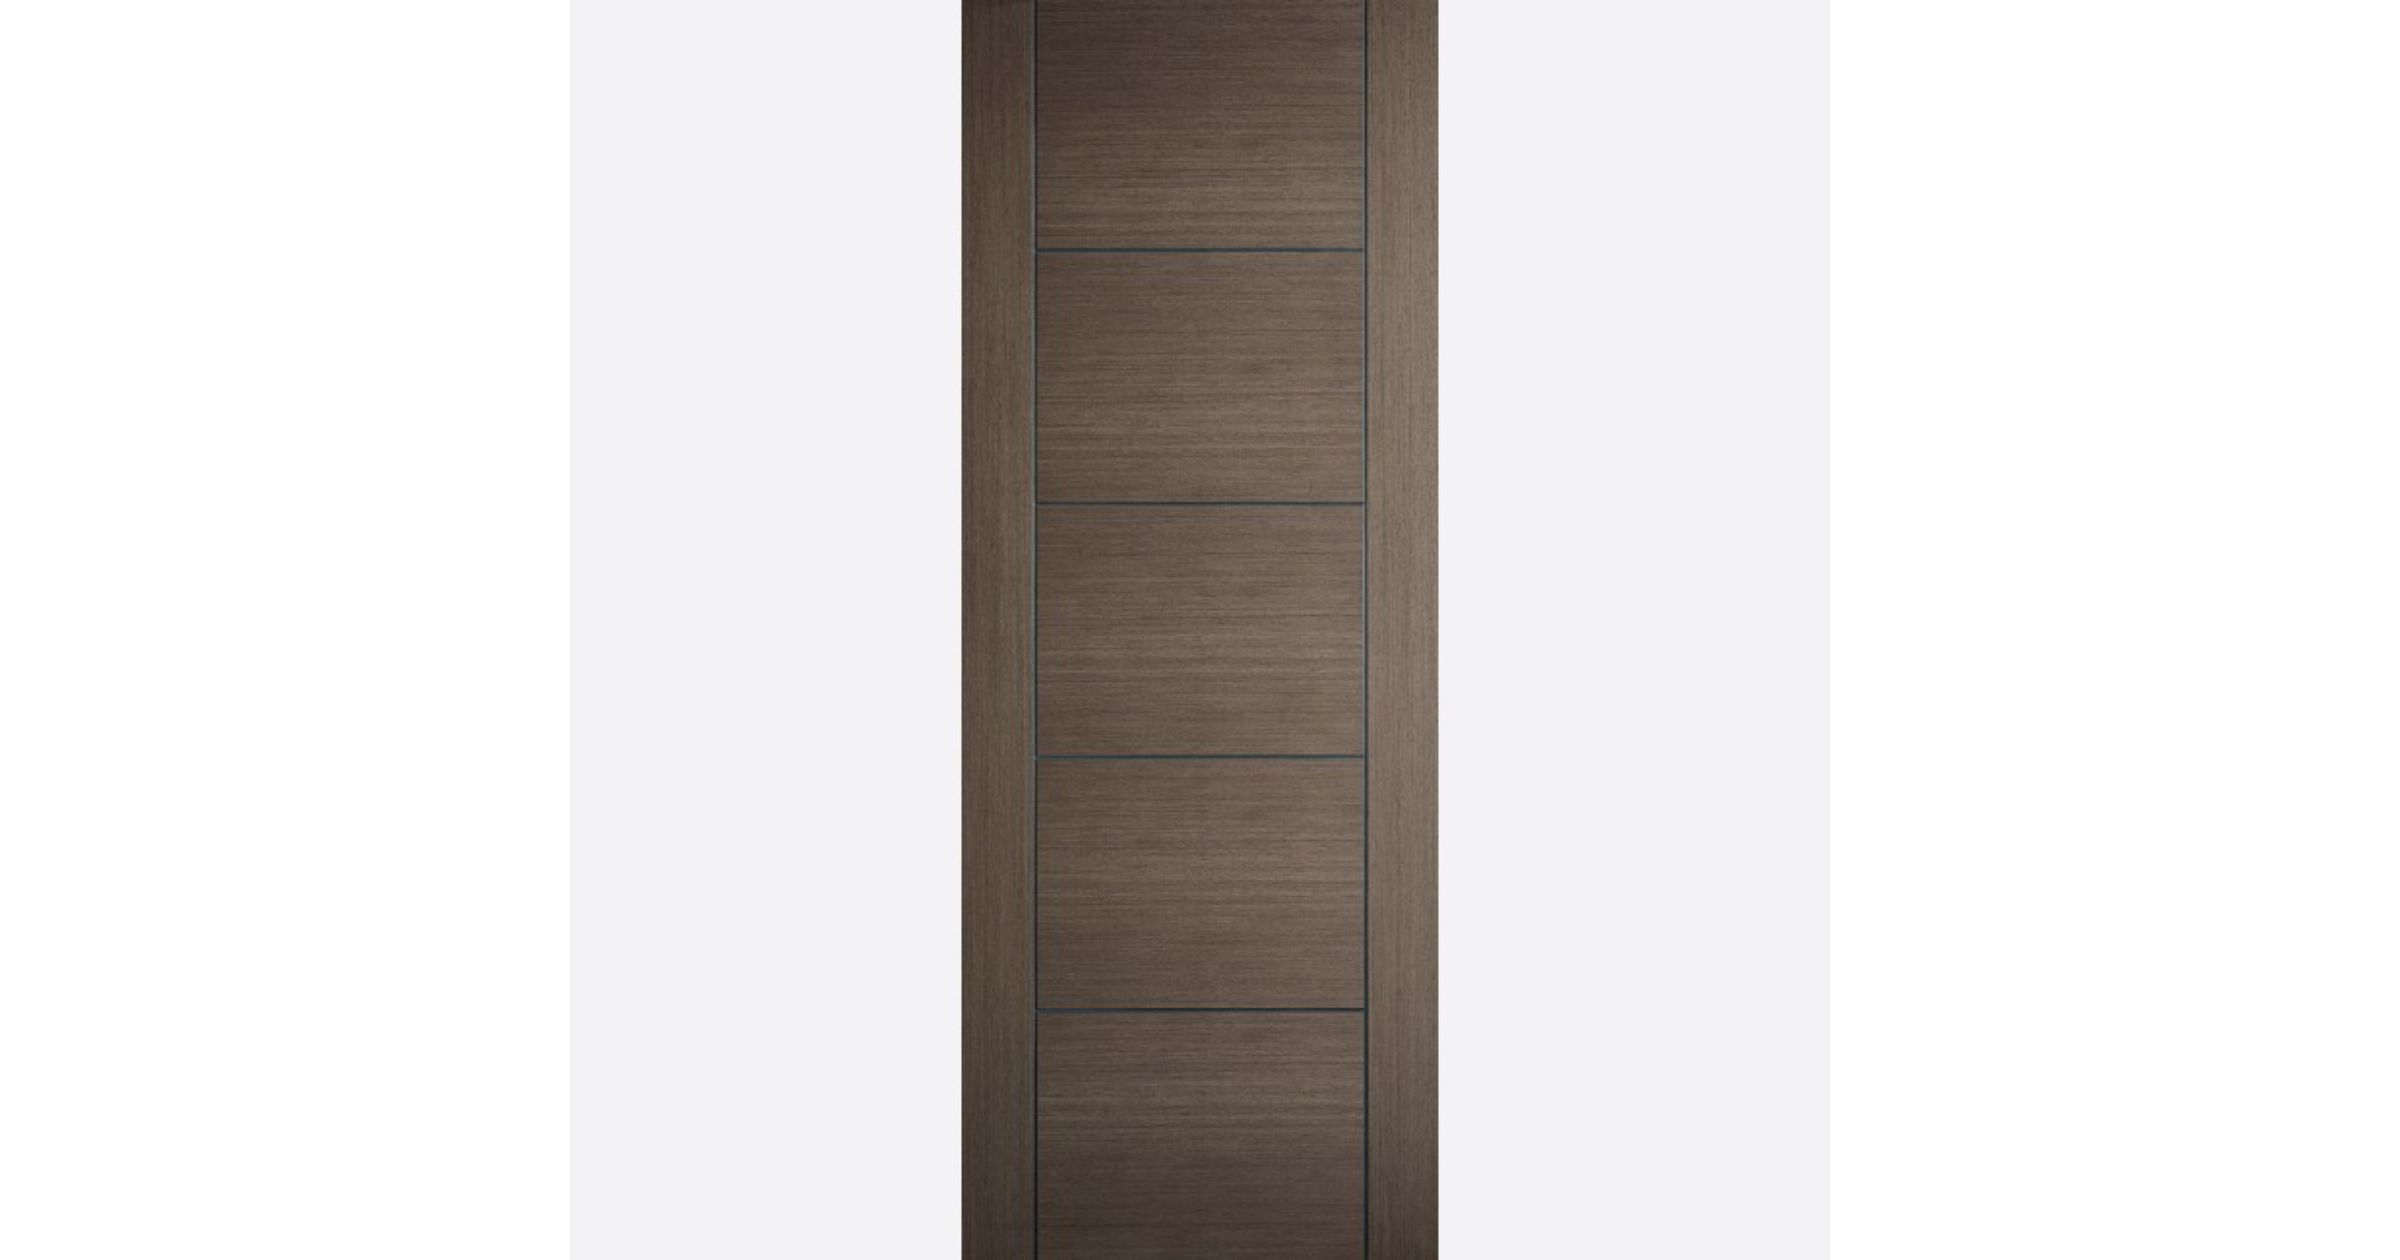 Vancouver Fire Door FD30 Flush *Pre-Finished Chocolate-Grey* 44mm Internal & LPD Colours Real-Veneer Internal Fire Doors | JAS Timber